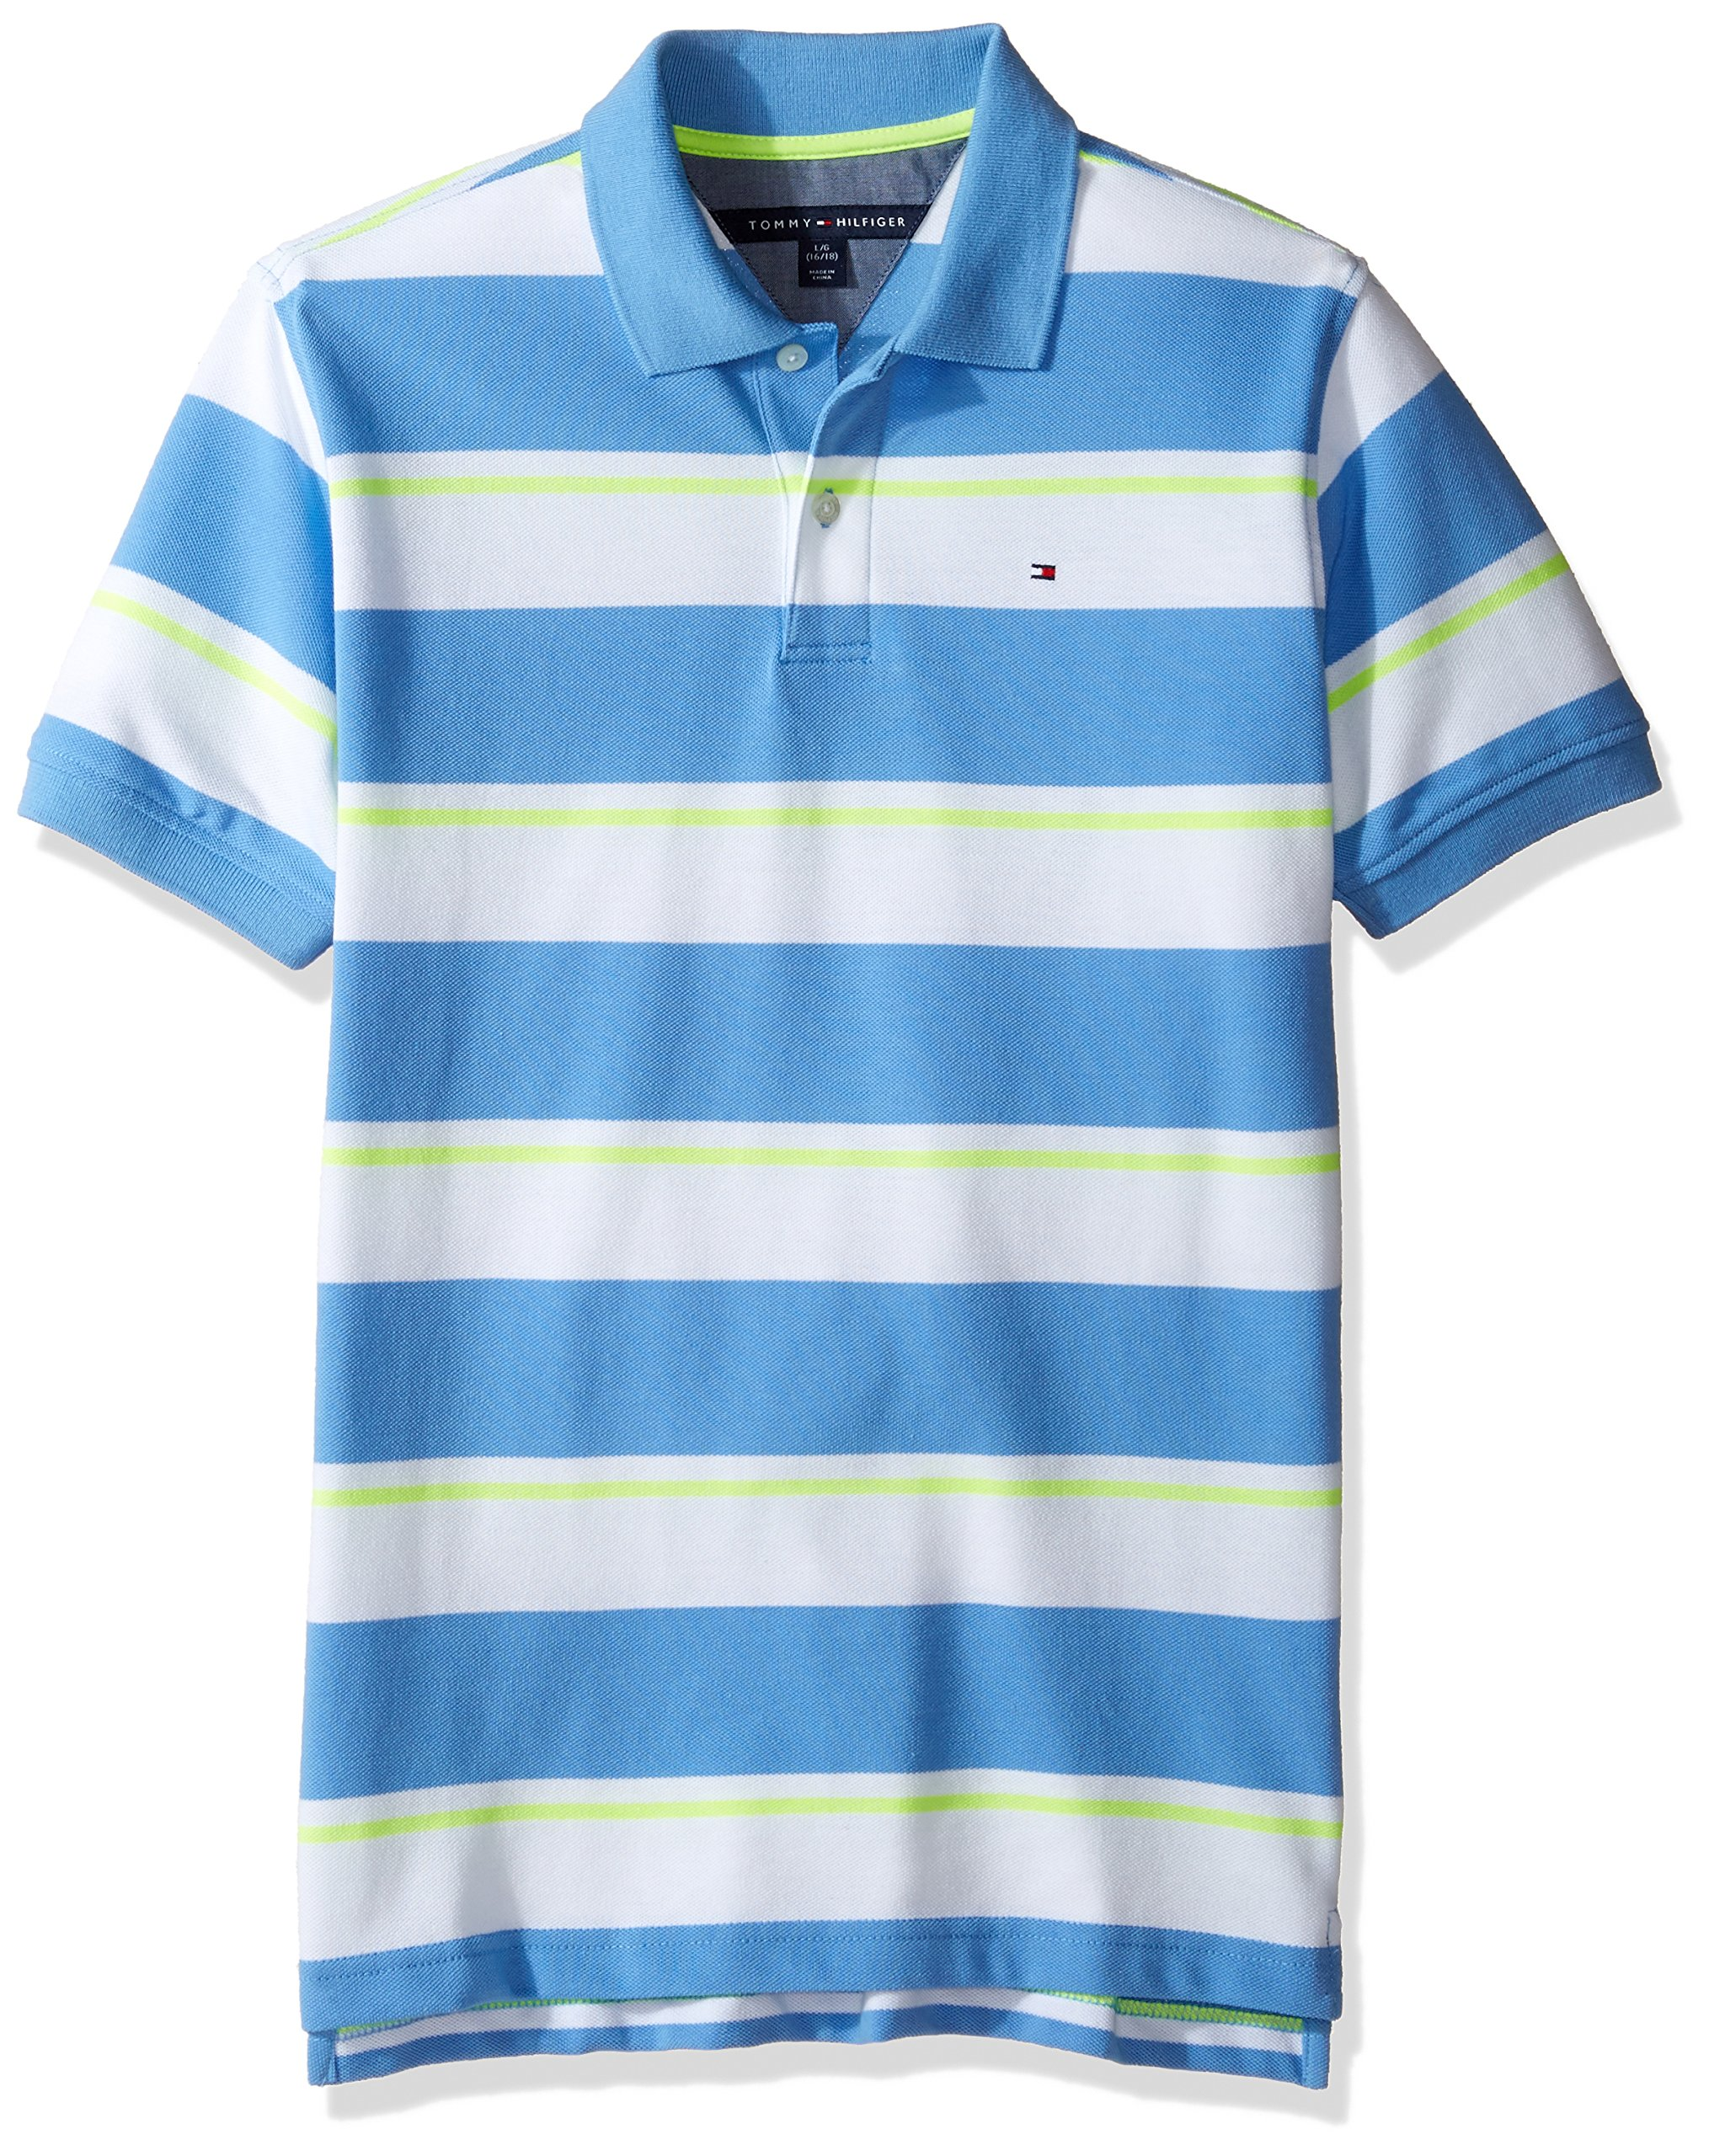 Tommy Hilfiger Boys' Little Short Sleeve Striped Polo Shirt, Summer Blue, Large/6